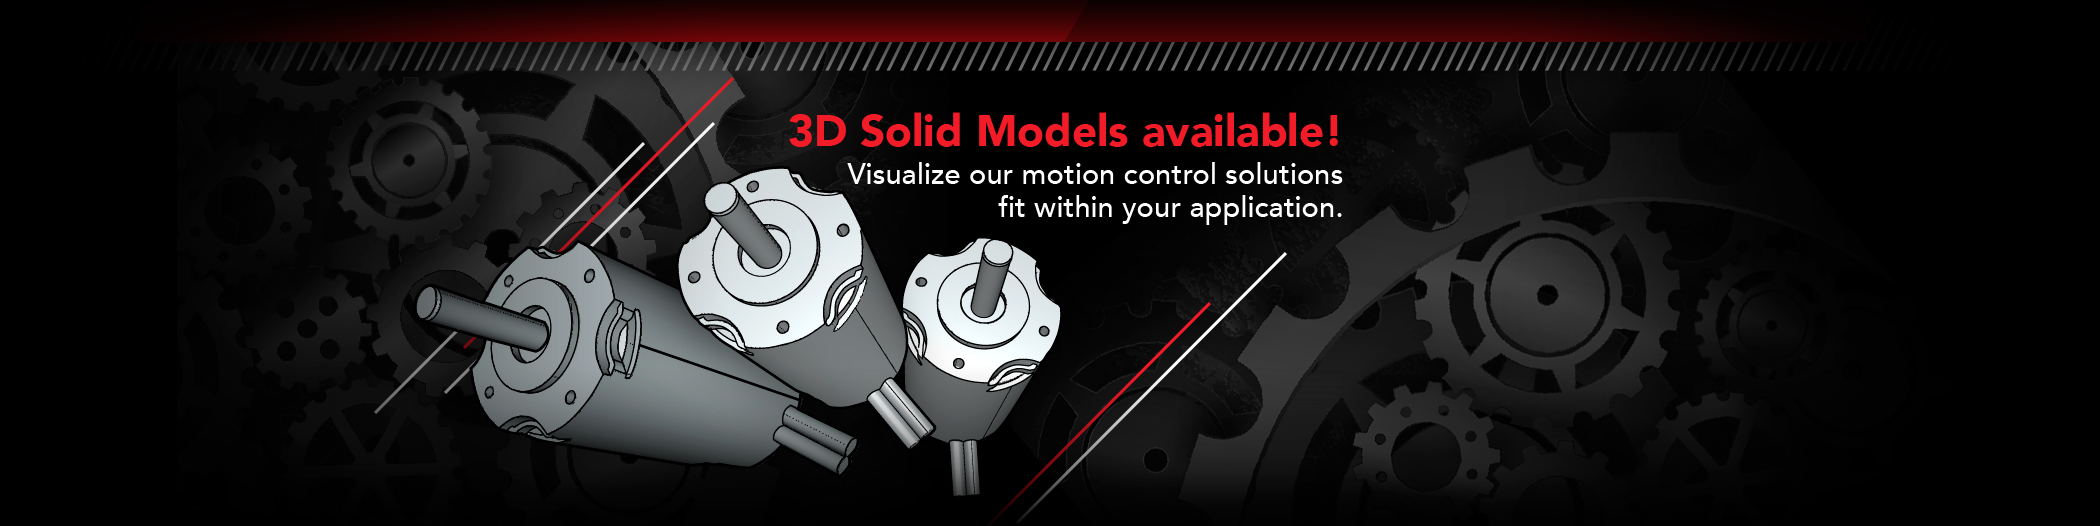 3D Solid Models available! Visualize our motion control solutions fit within your application.